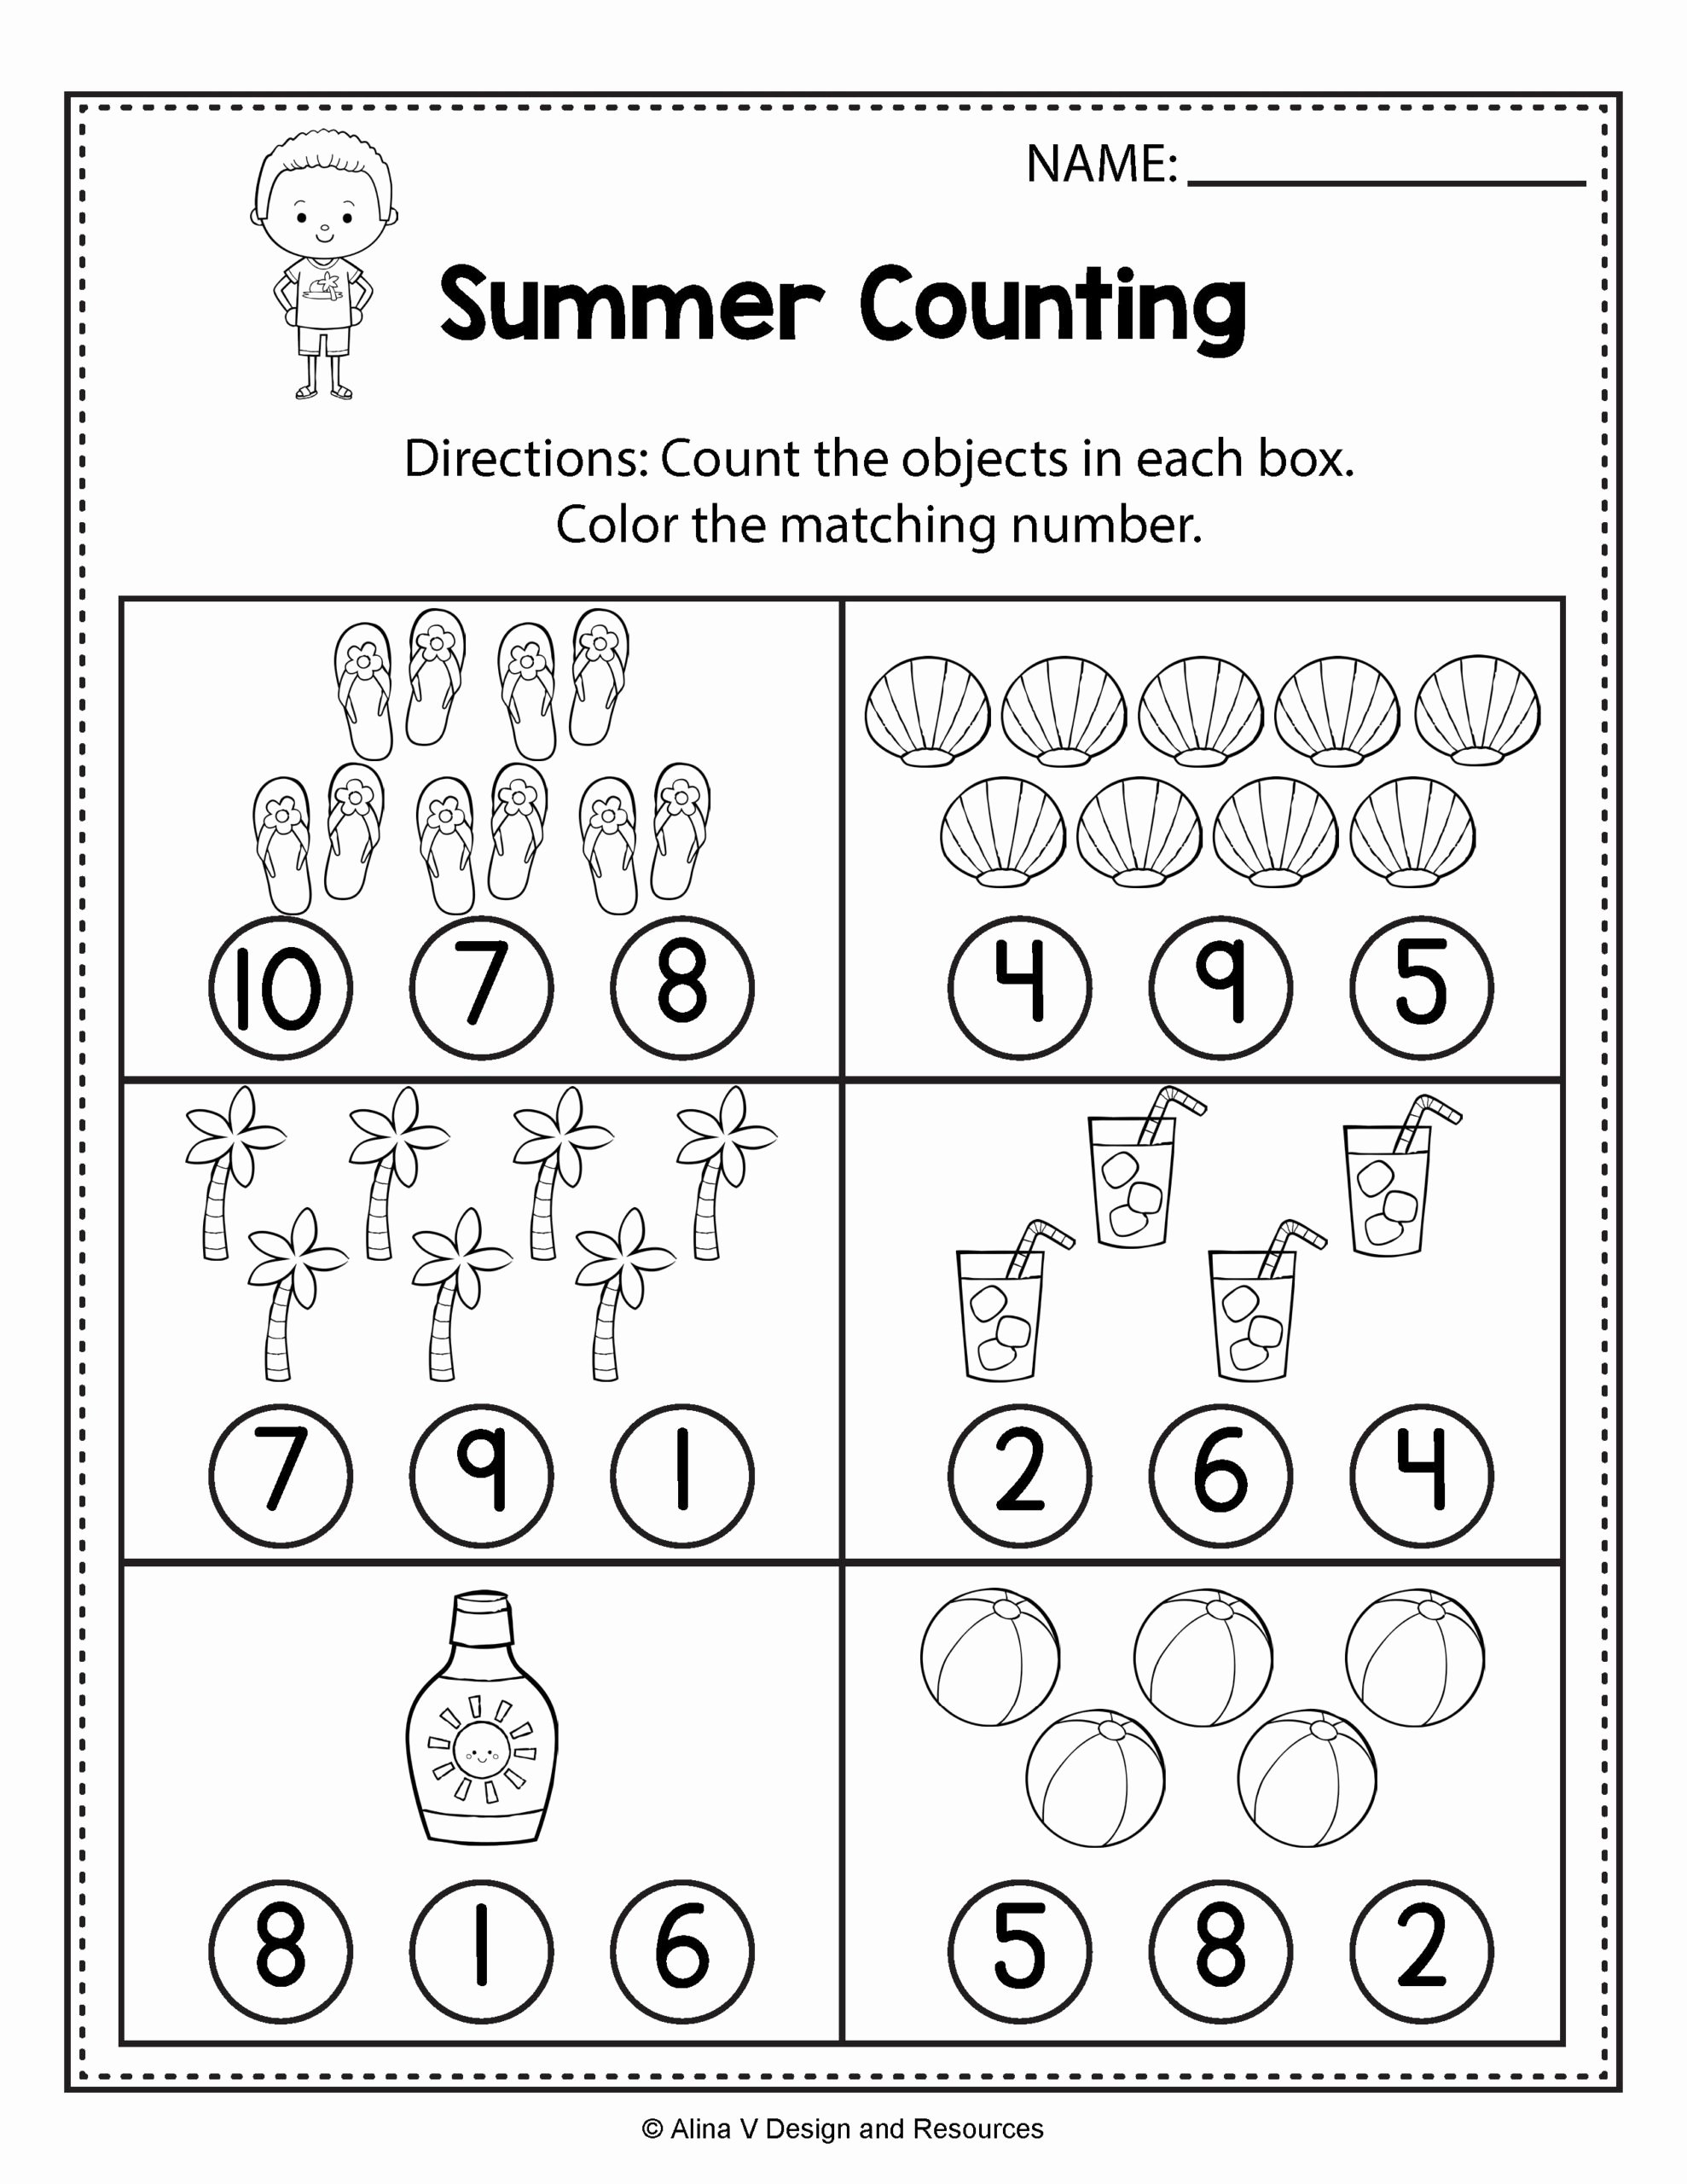 Matching Numbers Worksheets for Preschoolers Awesome Math Worksheet Remarkable Counting Worksheets for Preschool